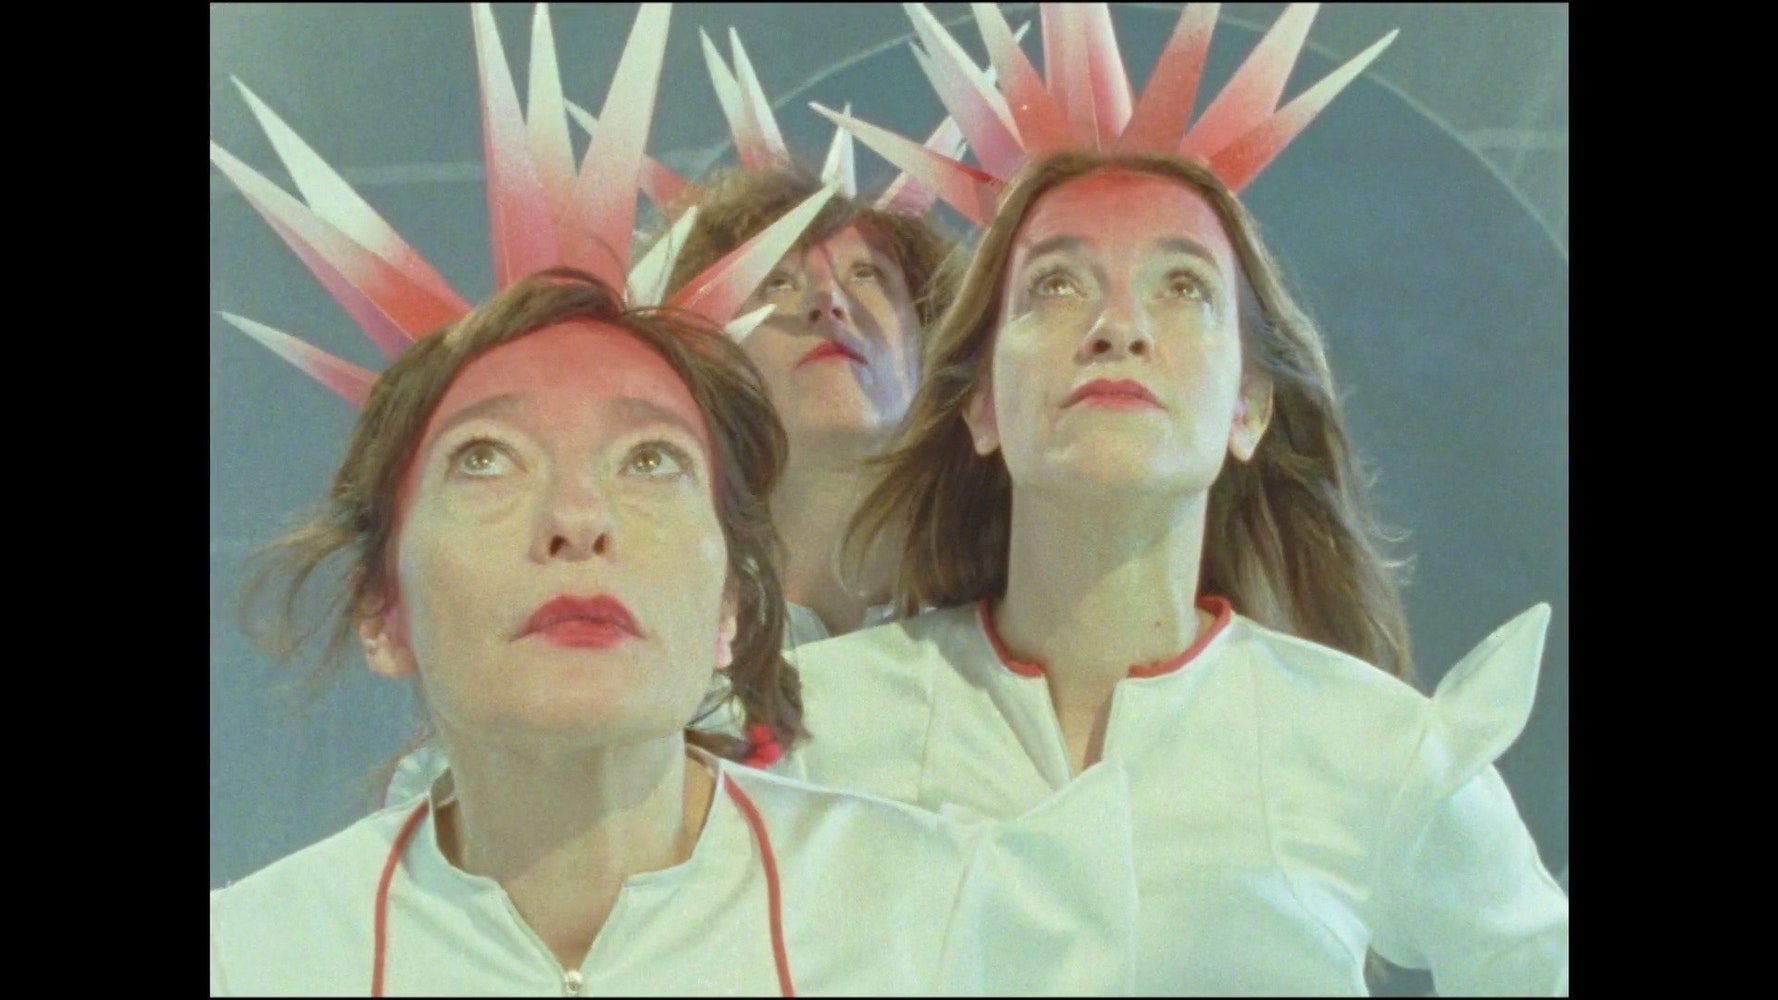 Image of three women looking upward wearing pink and white spiky crowns